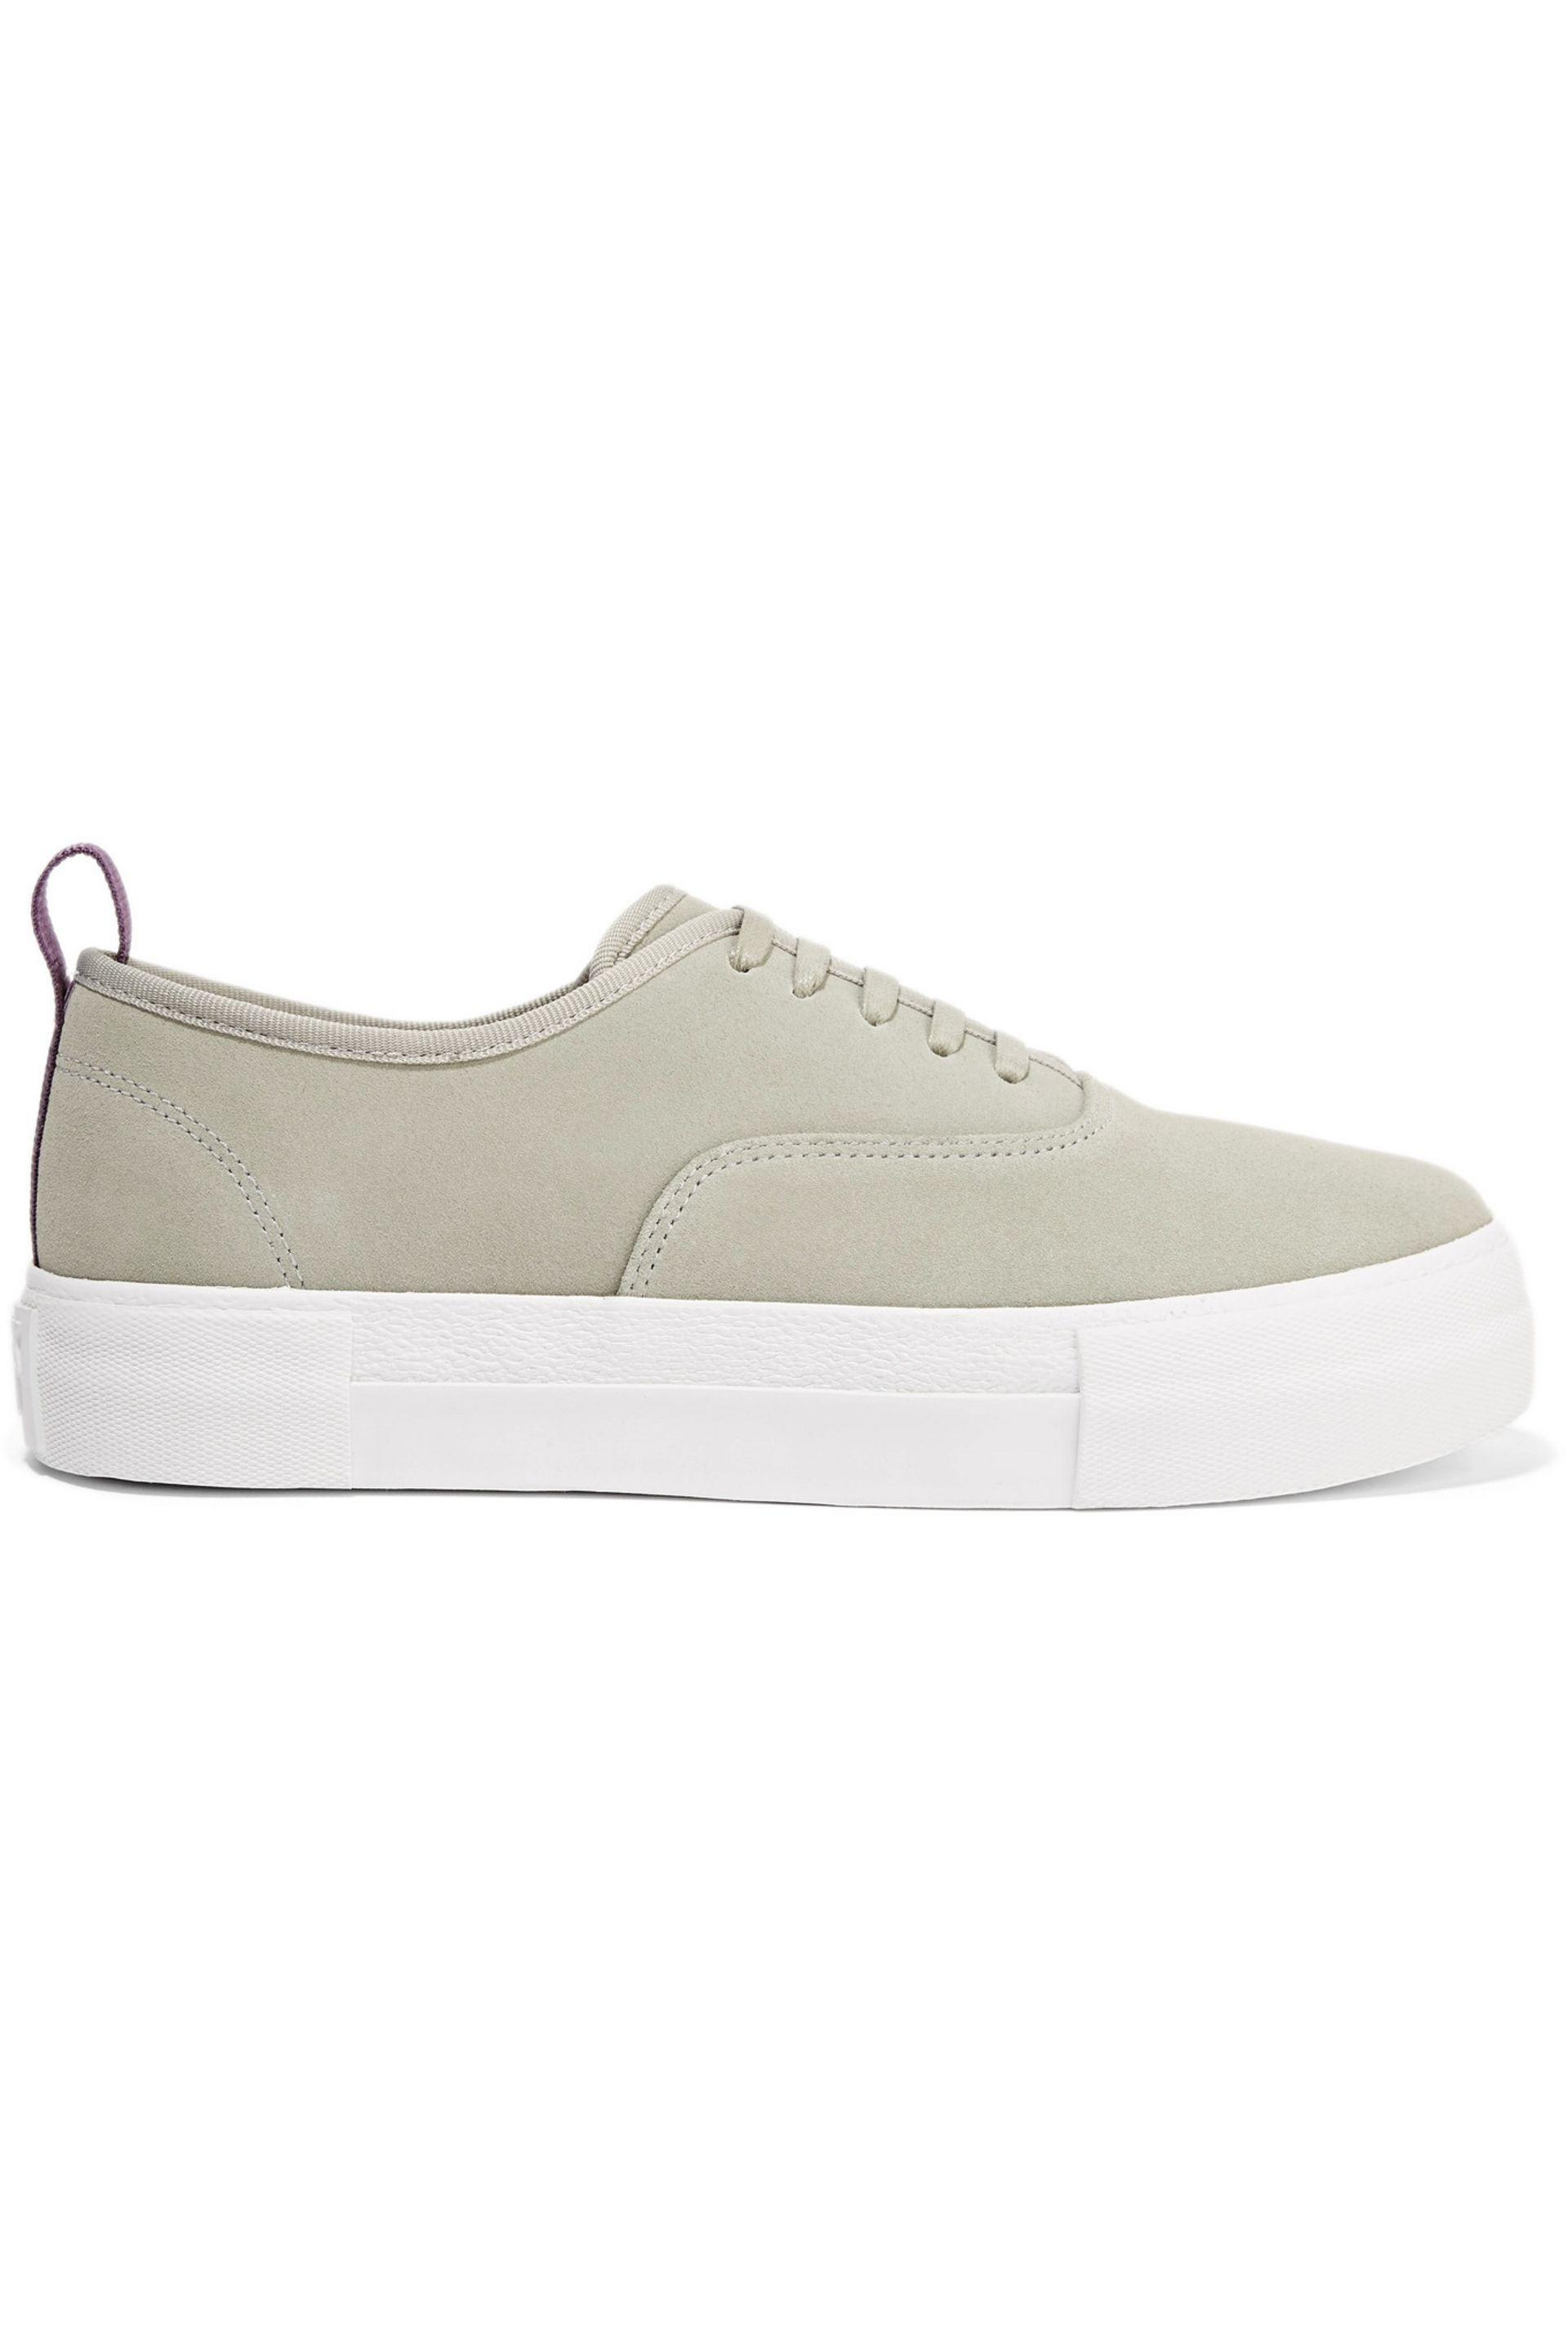 Eytys platform low-top sneakers low shipping buy cheap top quality limited edition cheap price ByBS8